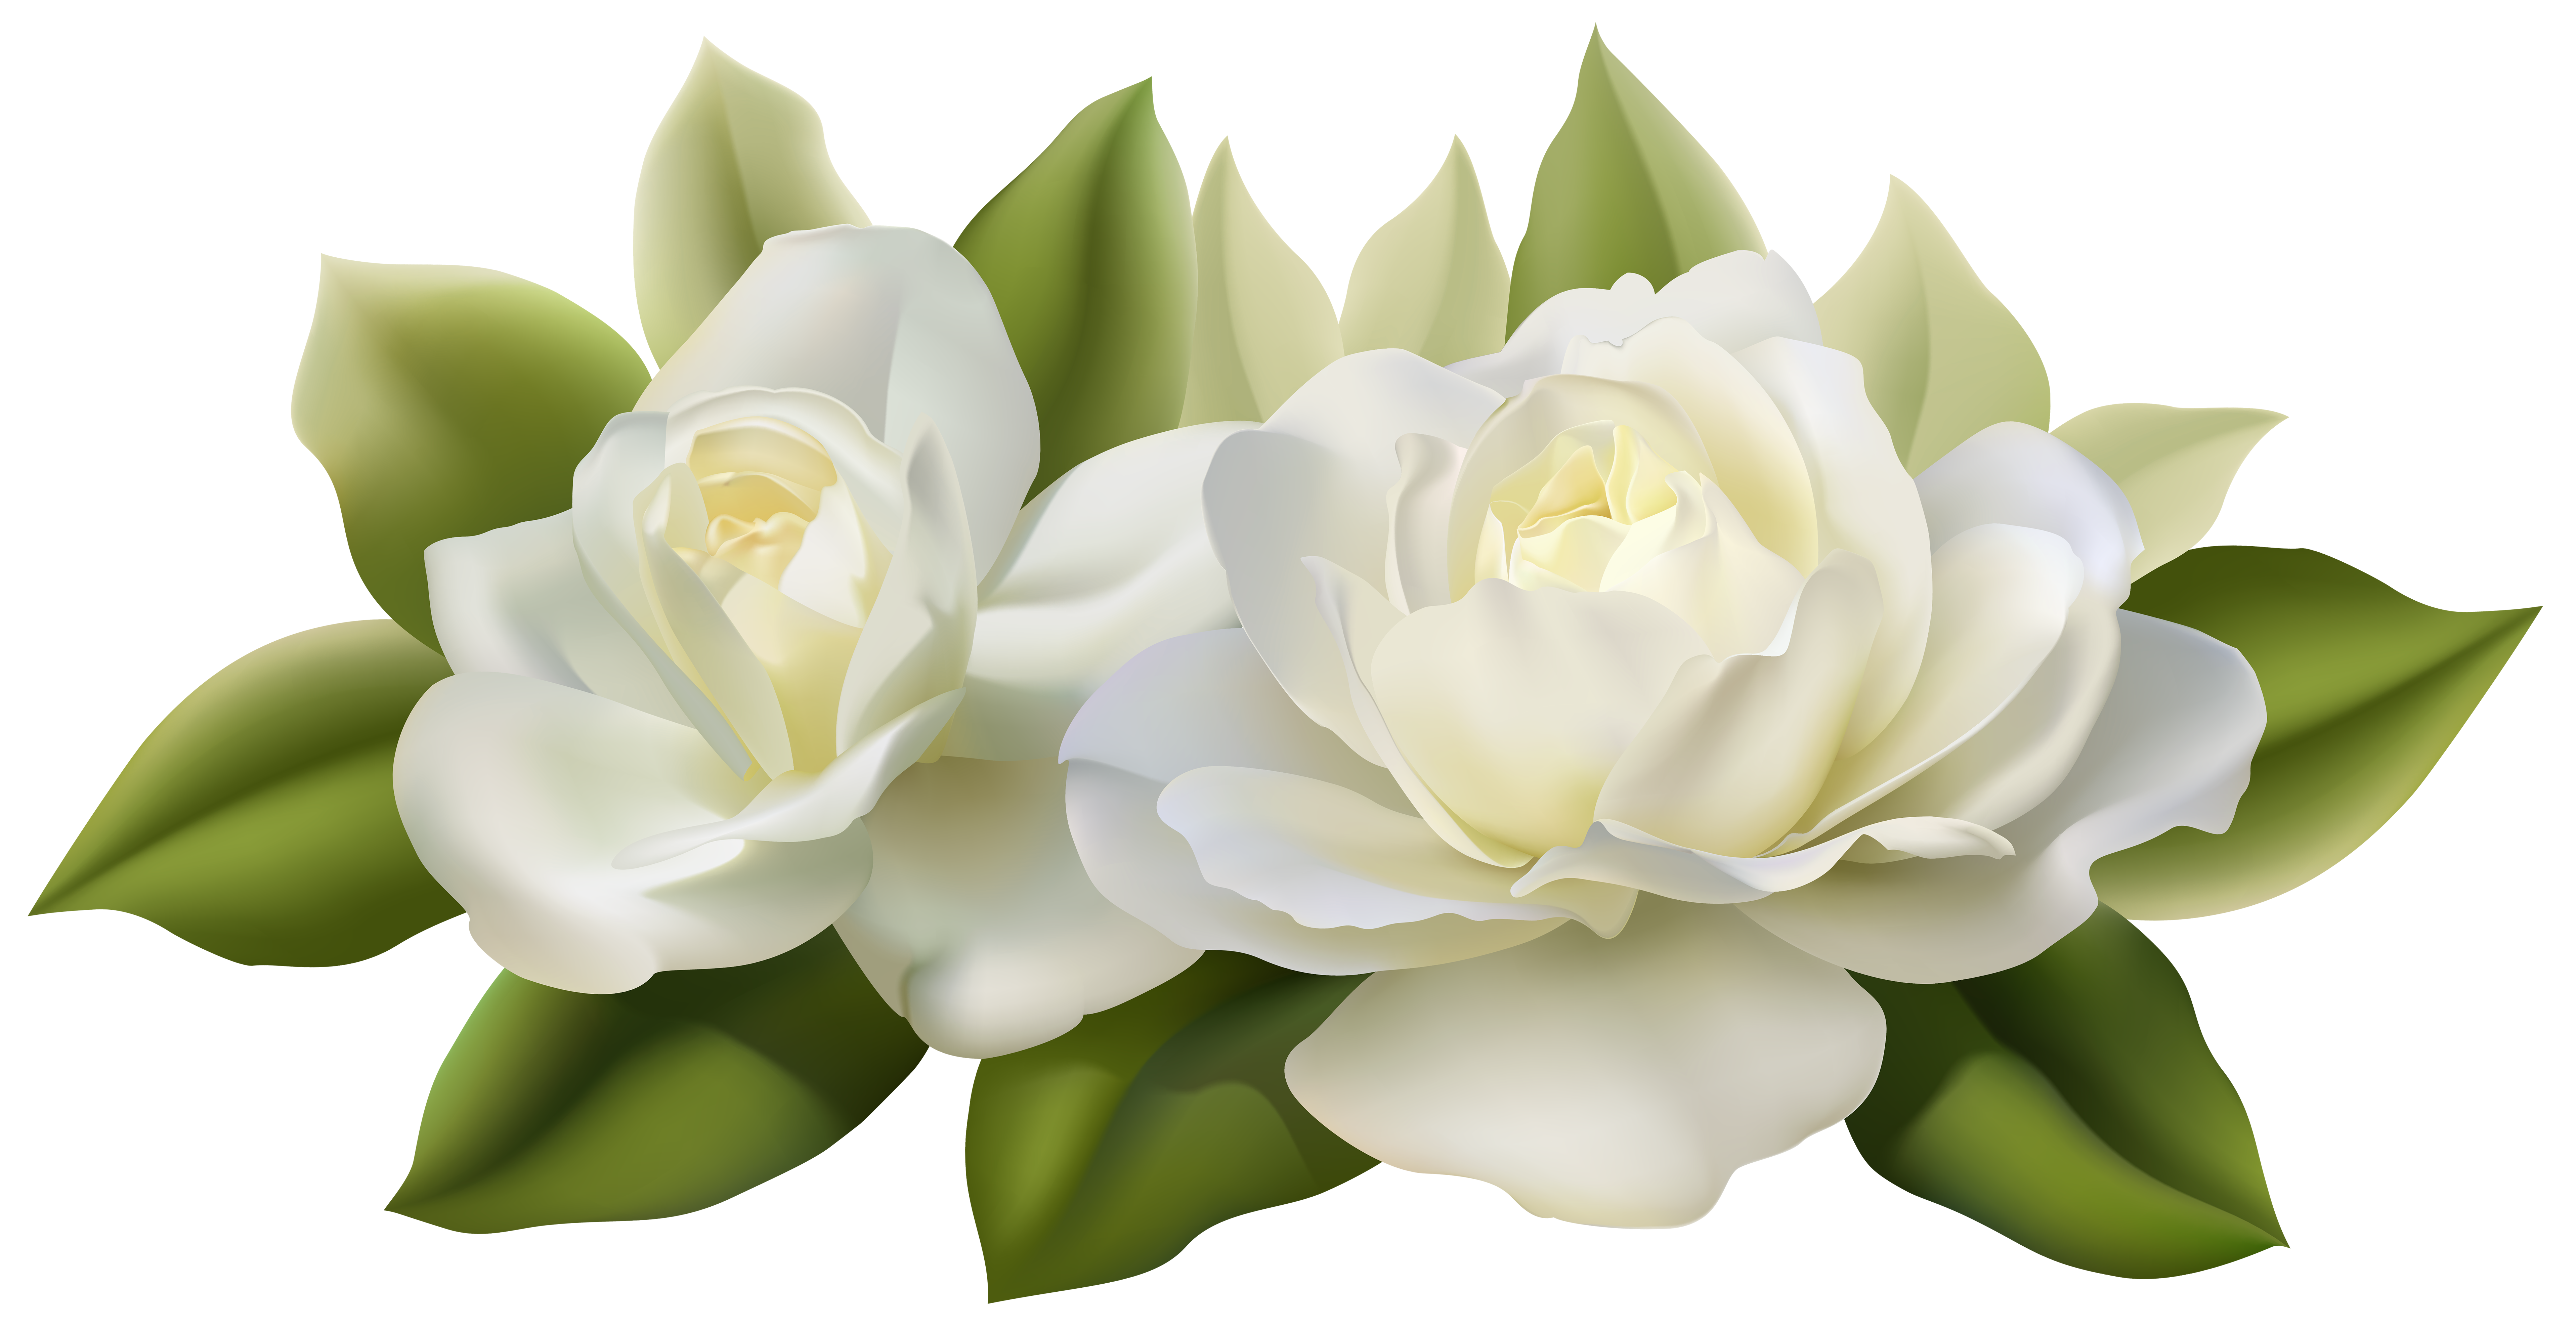 White rose border png. Beautiful roses with leaves